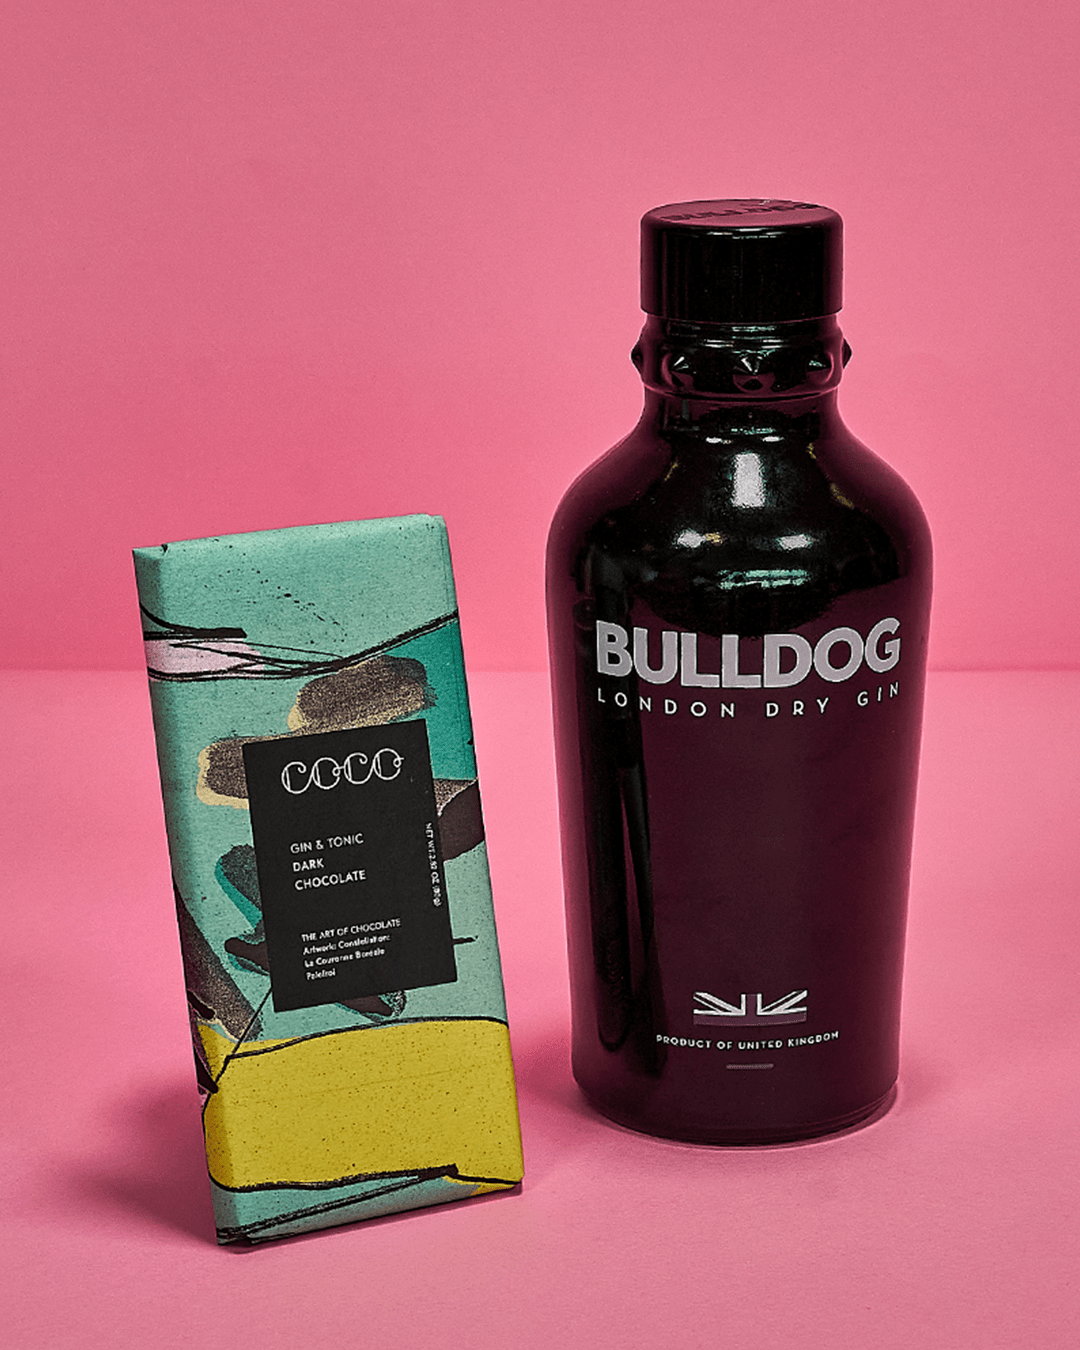 Bulldog Gin x COCO Gin & Tonic Chocolate Bar